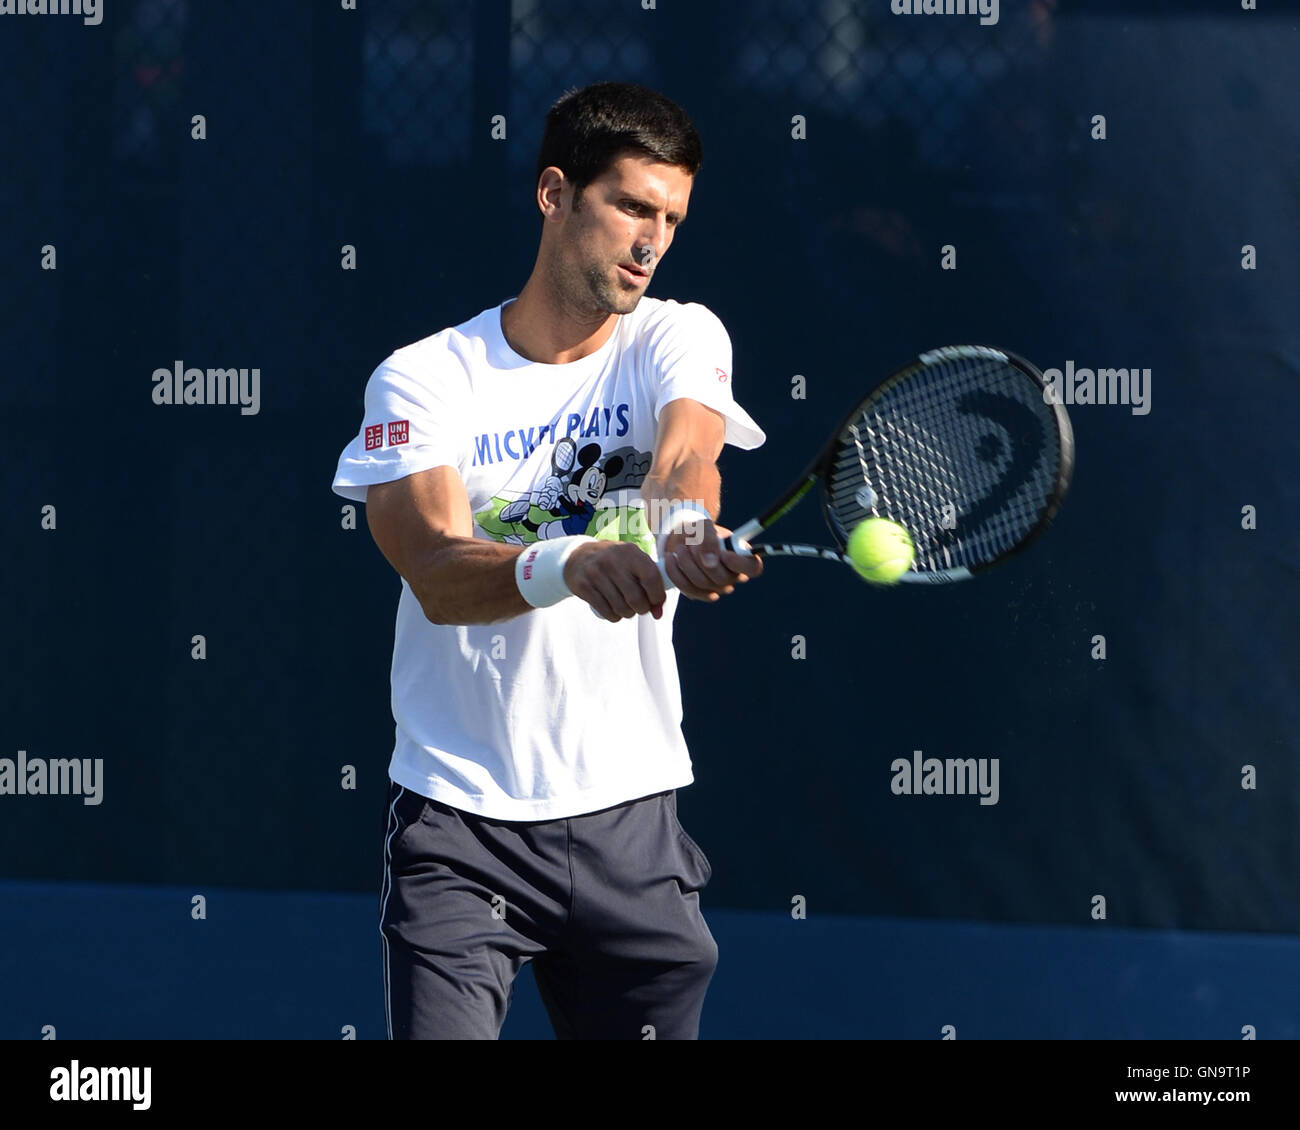 New York, USA. 28th Aug, 2016. Novak Djokovic on the practice court at the USTA Billie Jean King National Tennis - Stock Image